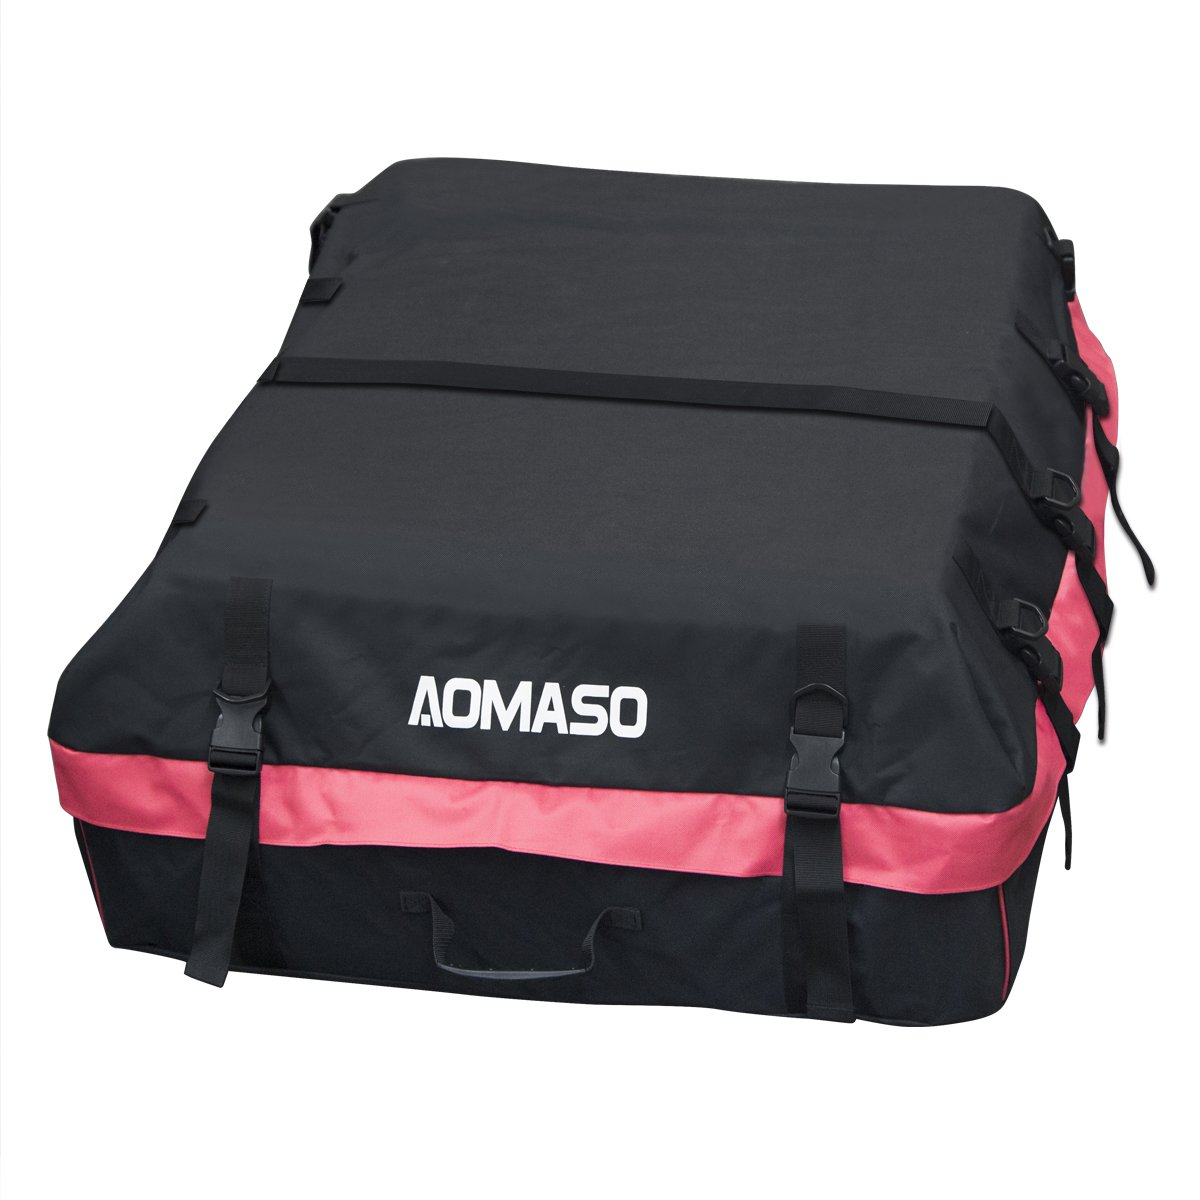 Aomaso Car Top Carrier Waterproof Roof Top Cargo Rack 10 Cubic Feet Storage Box Roof Top Bag for Travel and Luggage Transportation by Aomaso